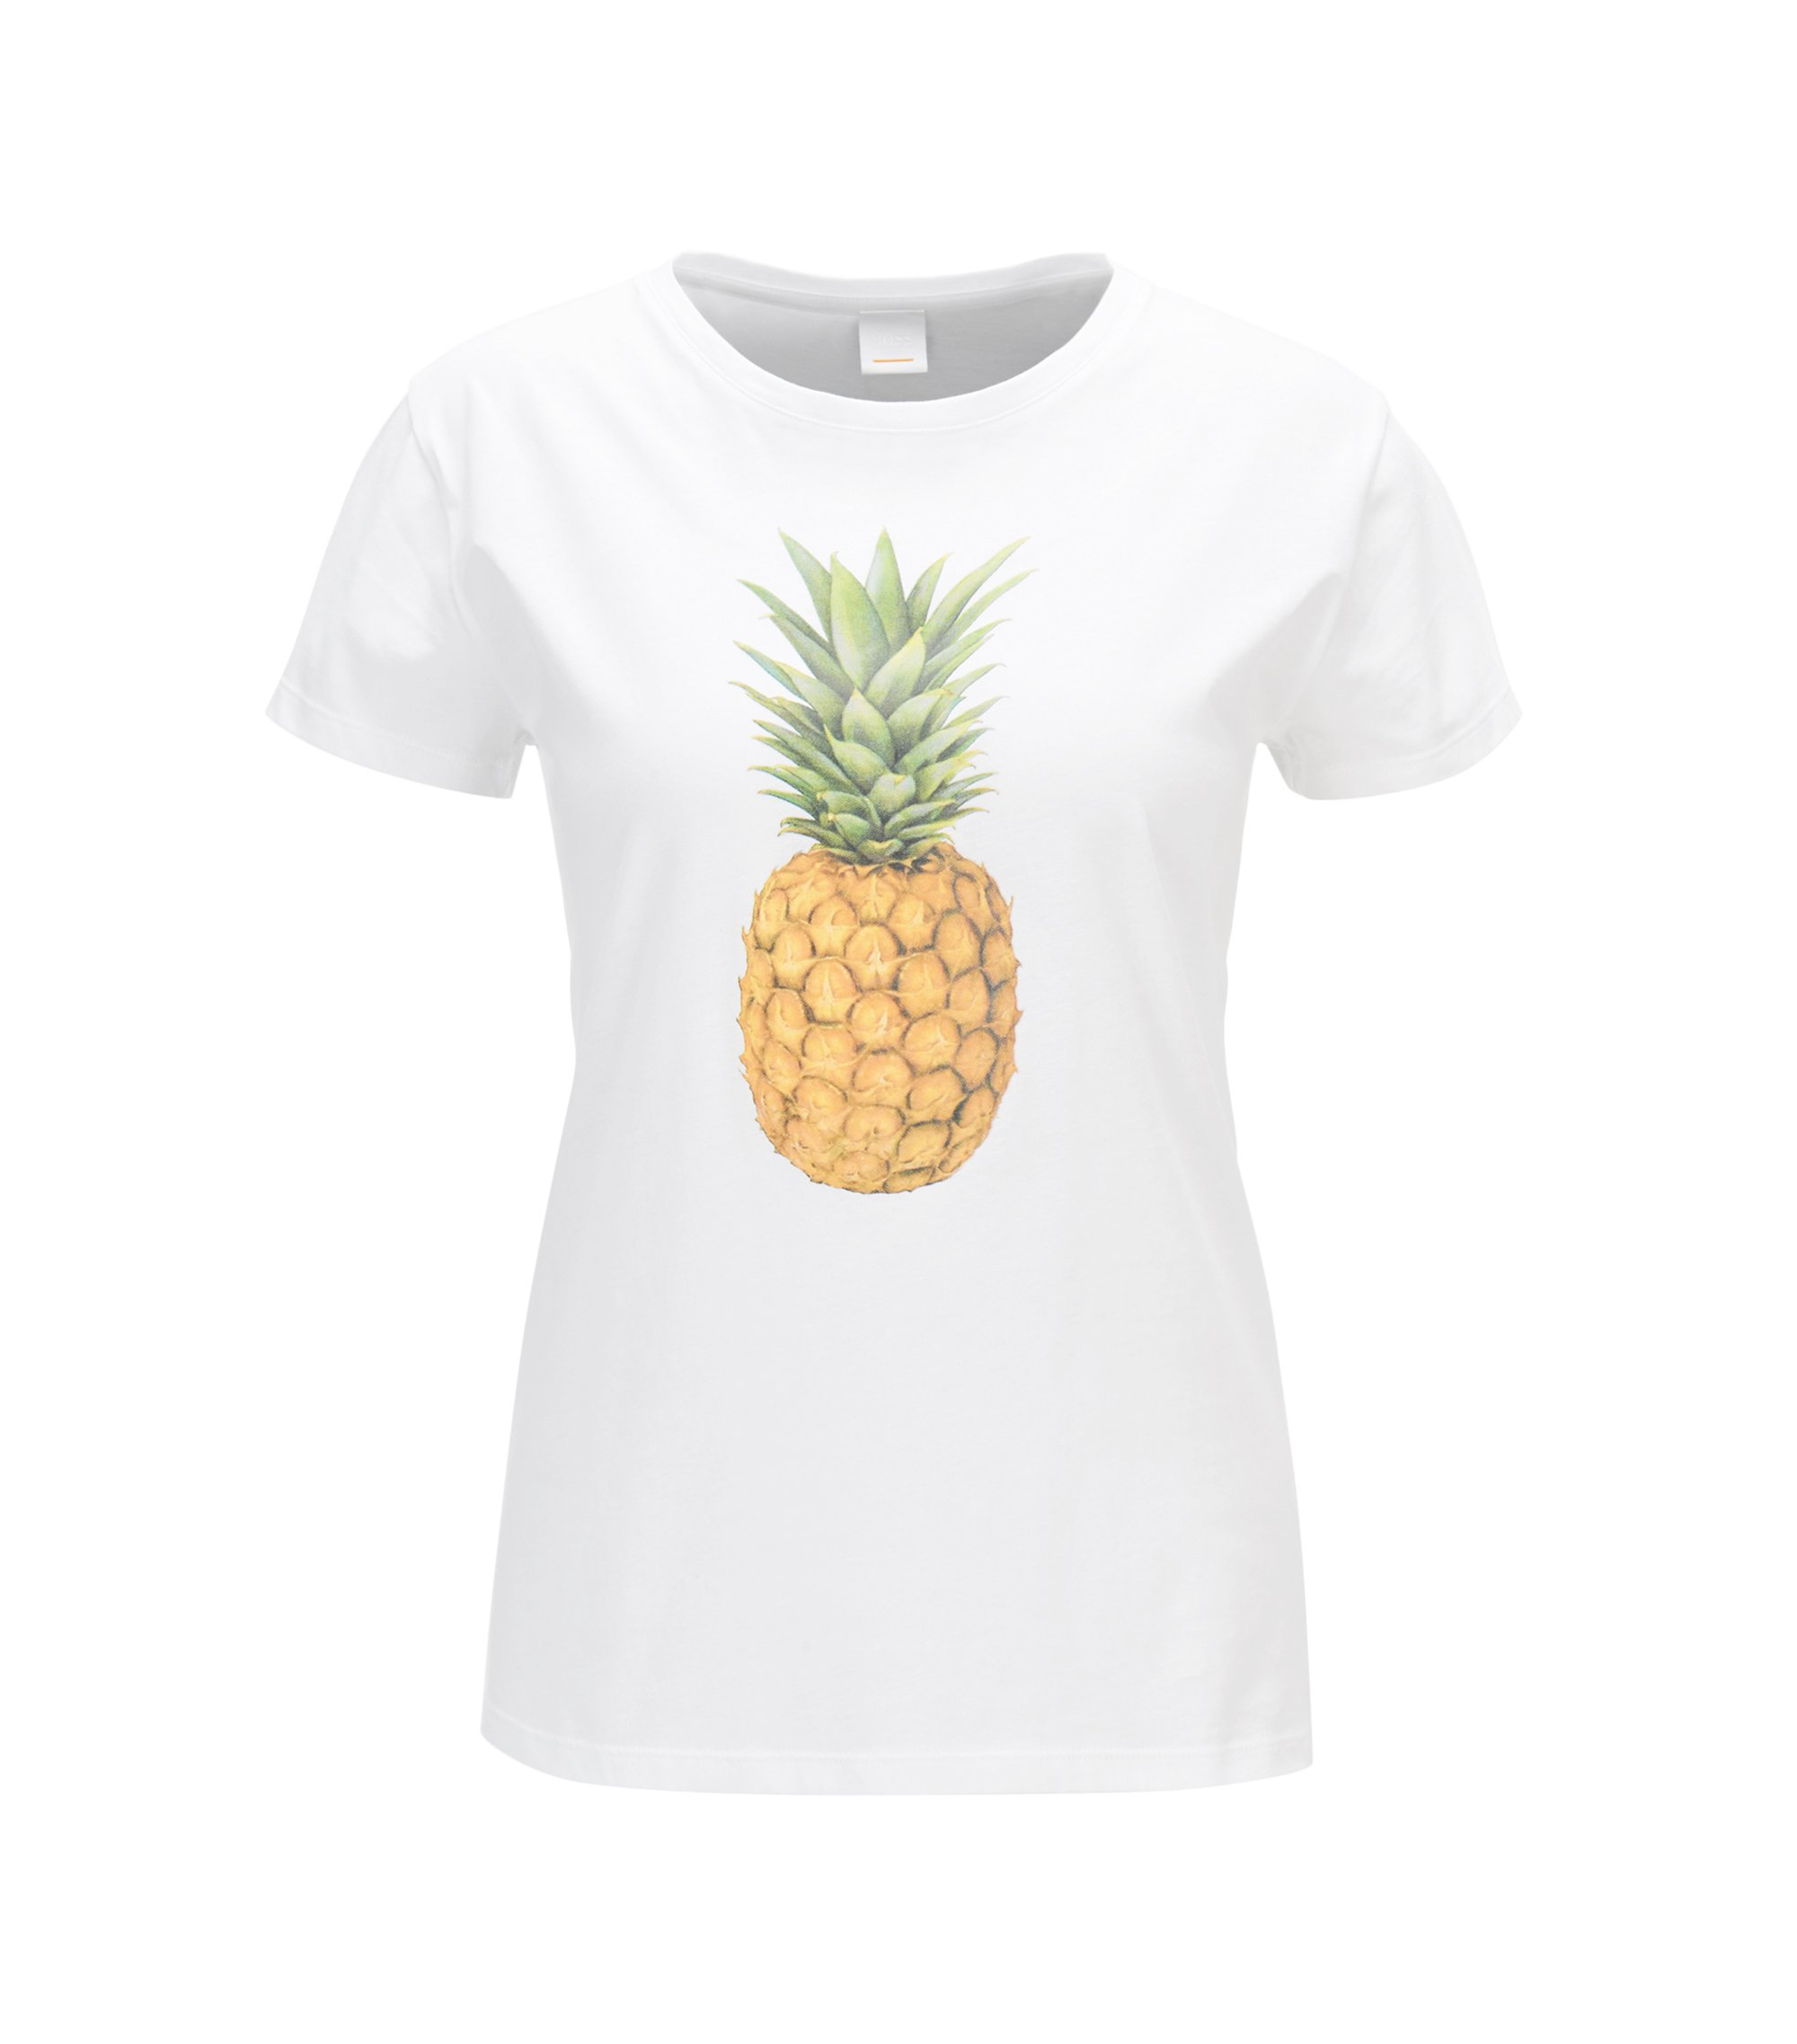 Pineapple-print cotton-jersey T-shirt, White